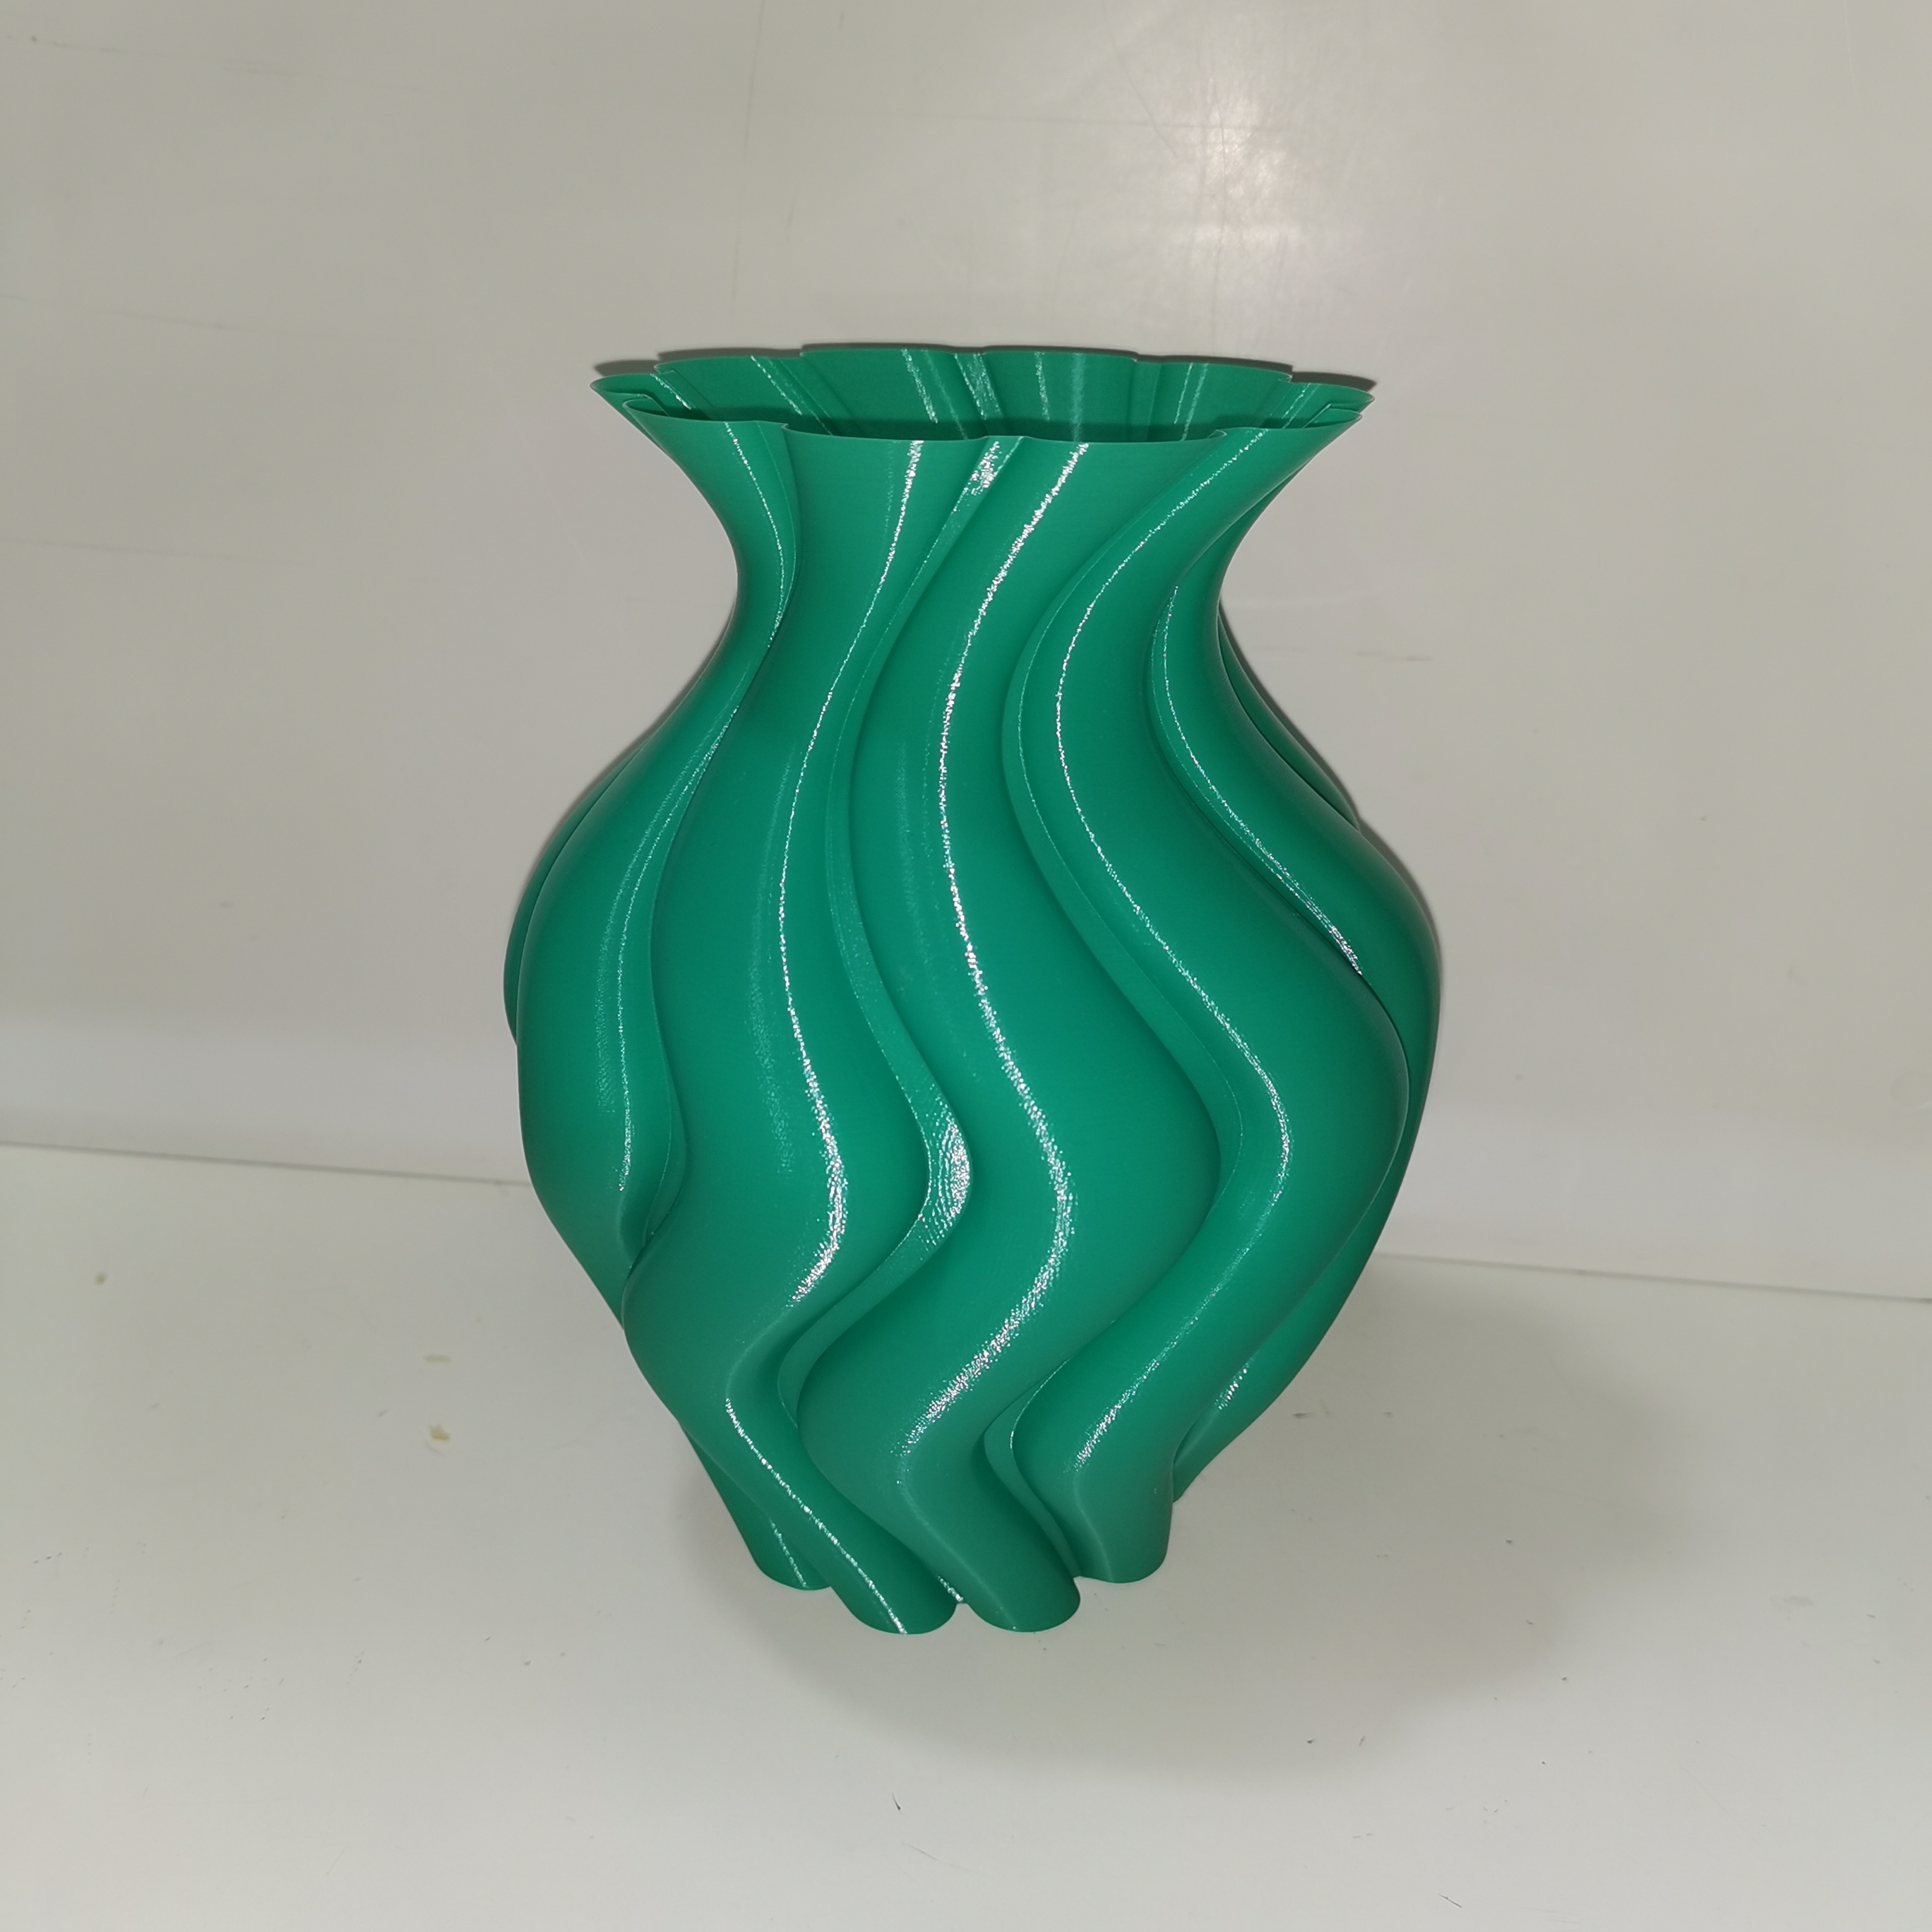 ROUNDED_TWISTED_VASE_3dprint3[1].jpg Download free STL file ROUNDED TWISTED VASE • Model to 3D print, ea3dp